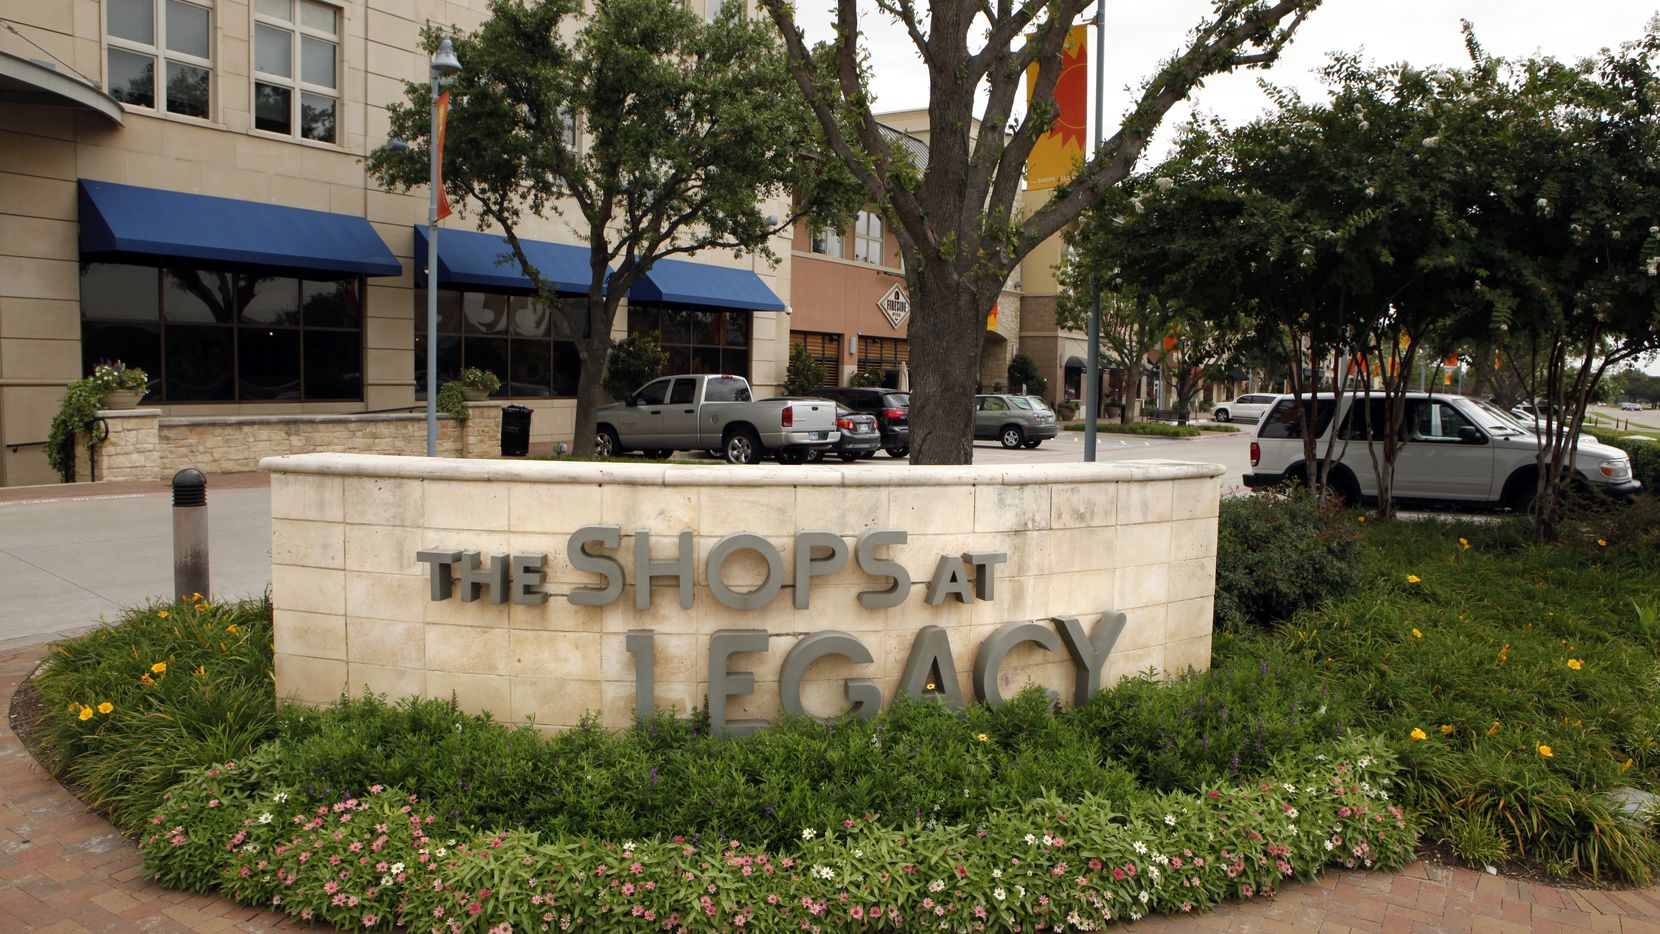 Spaces is opening its third Plano location in the Shops at Legacy.